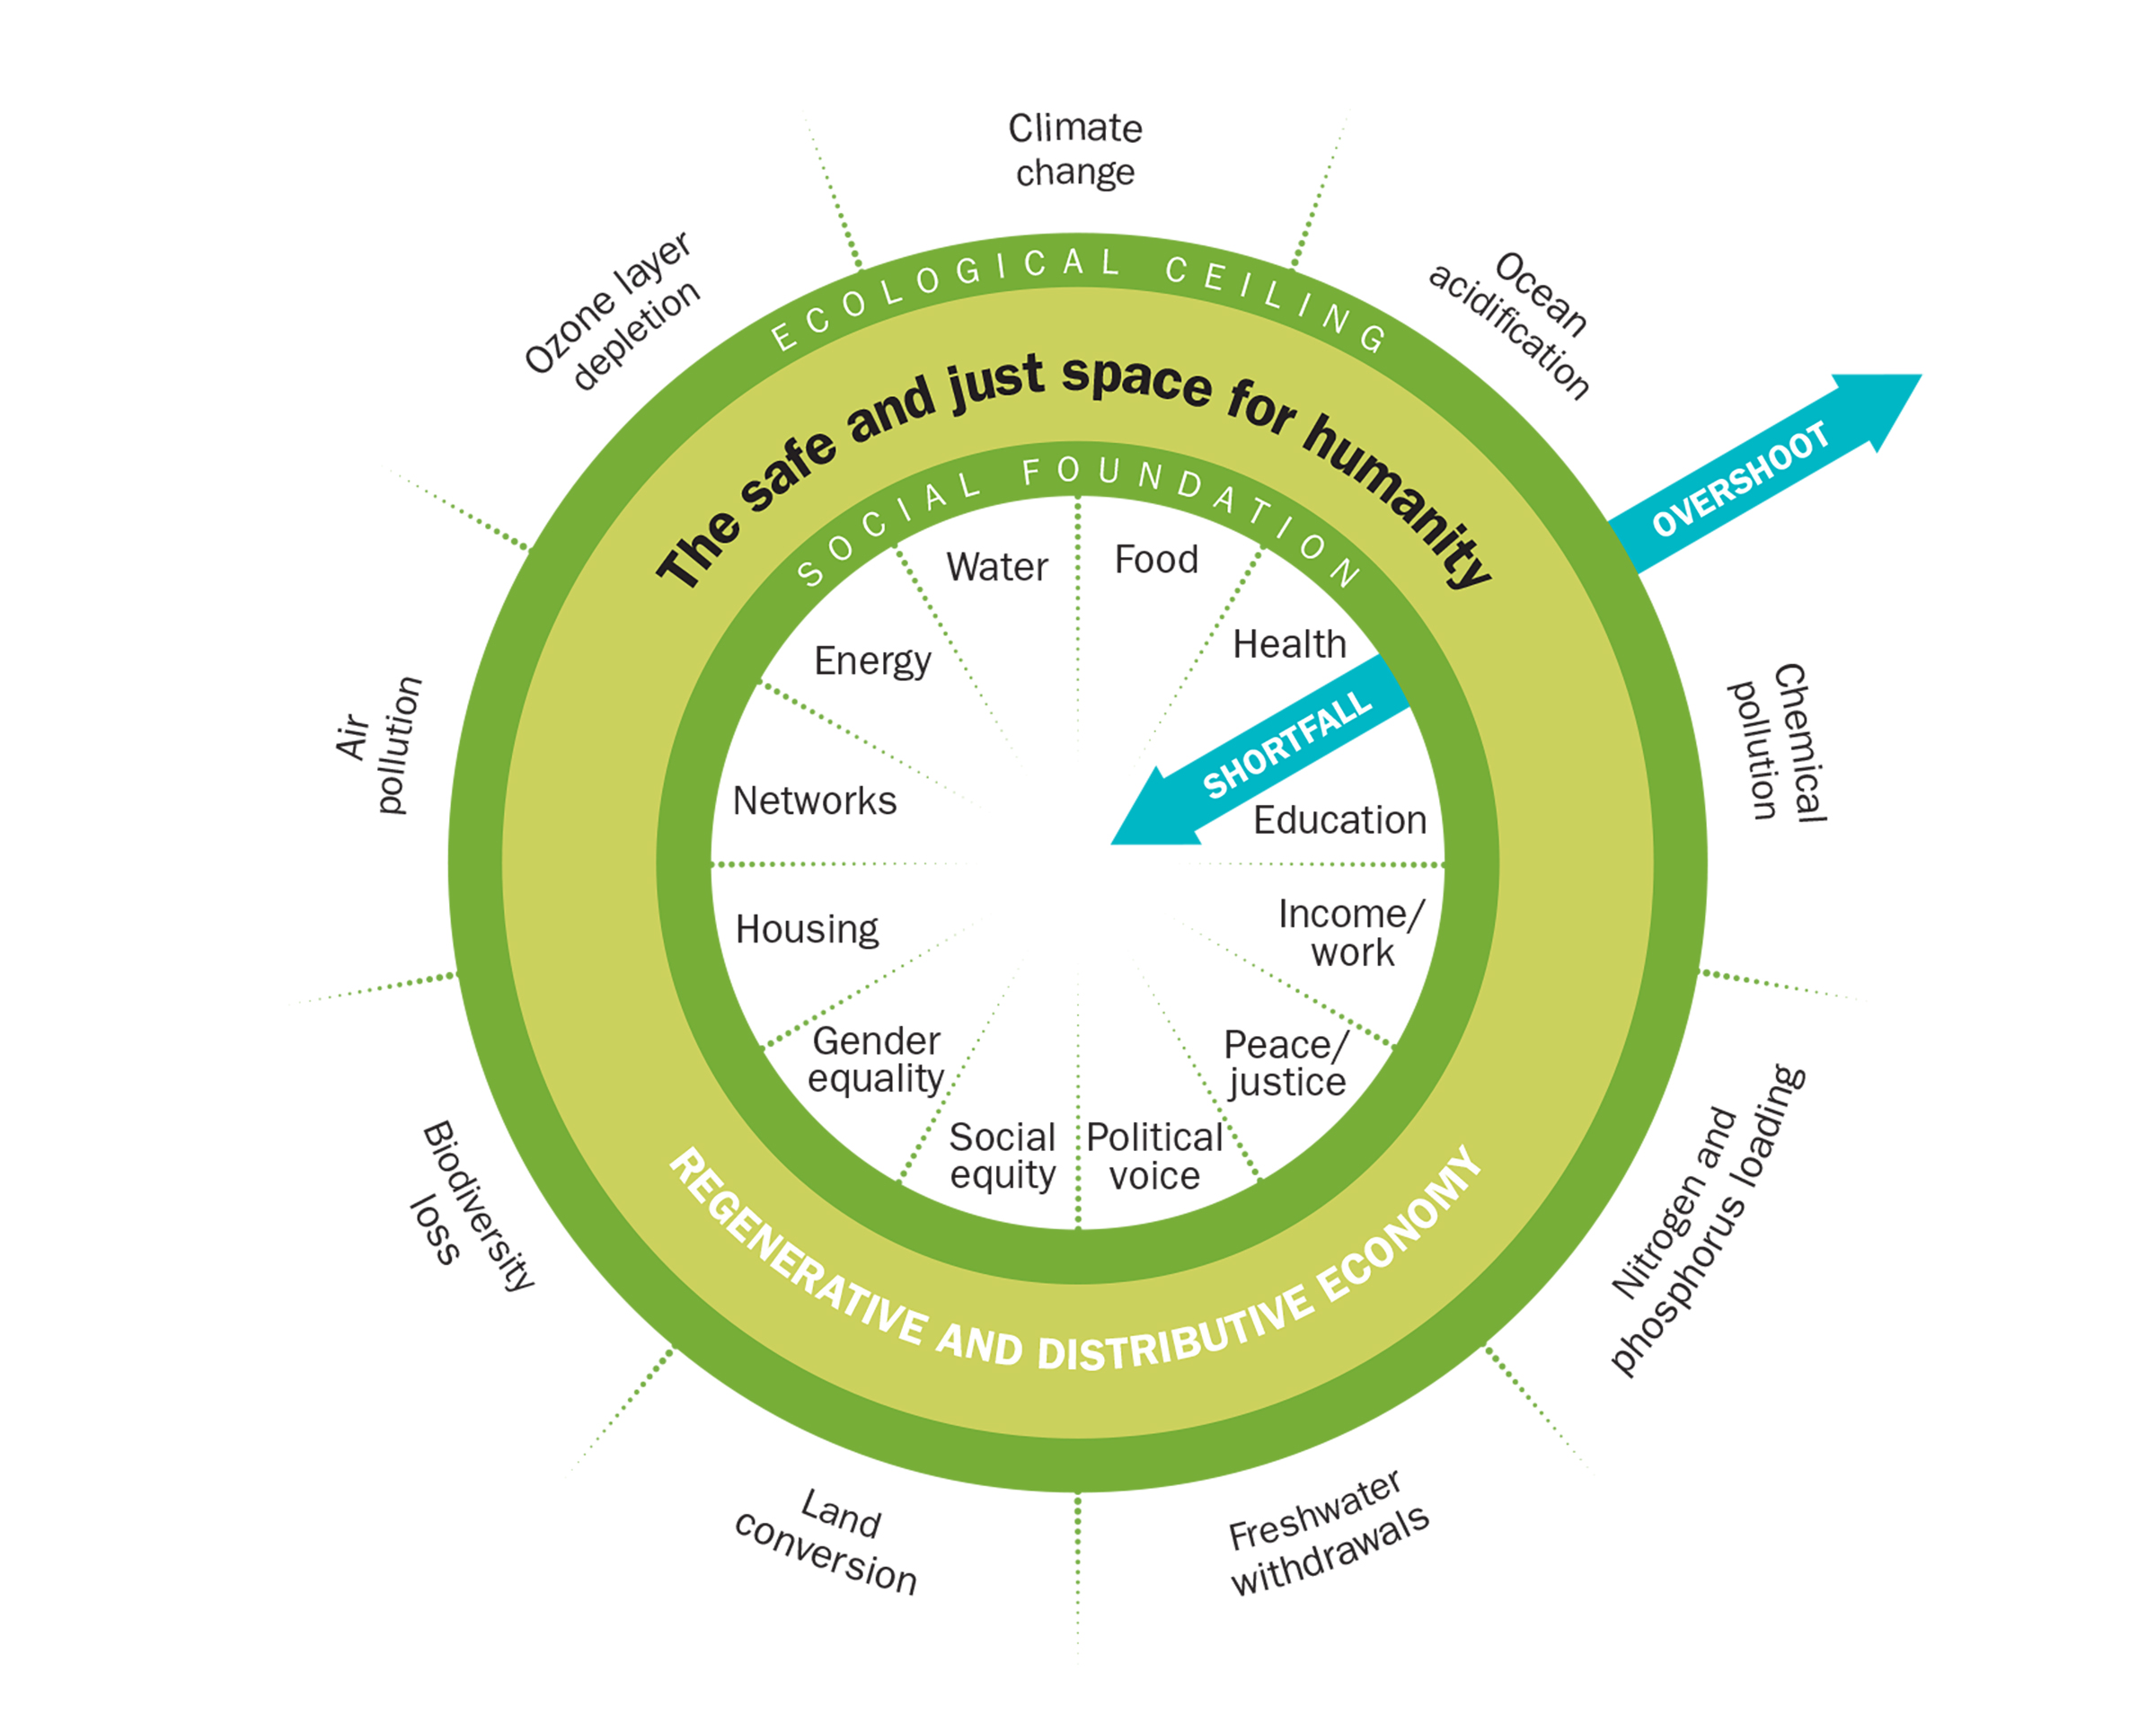 Inner Ring: Twelve essentials of life that no one in society should be deprived of; Outer Ring: Nine ecological limits of earth's life-supporting systems that humanity must not collectively overshoot; Sweet Spot: The space both environmentally safe and socially just where humanity can thrive